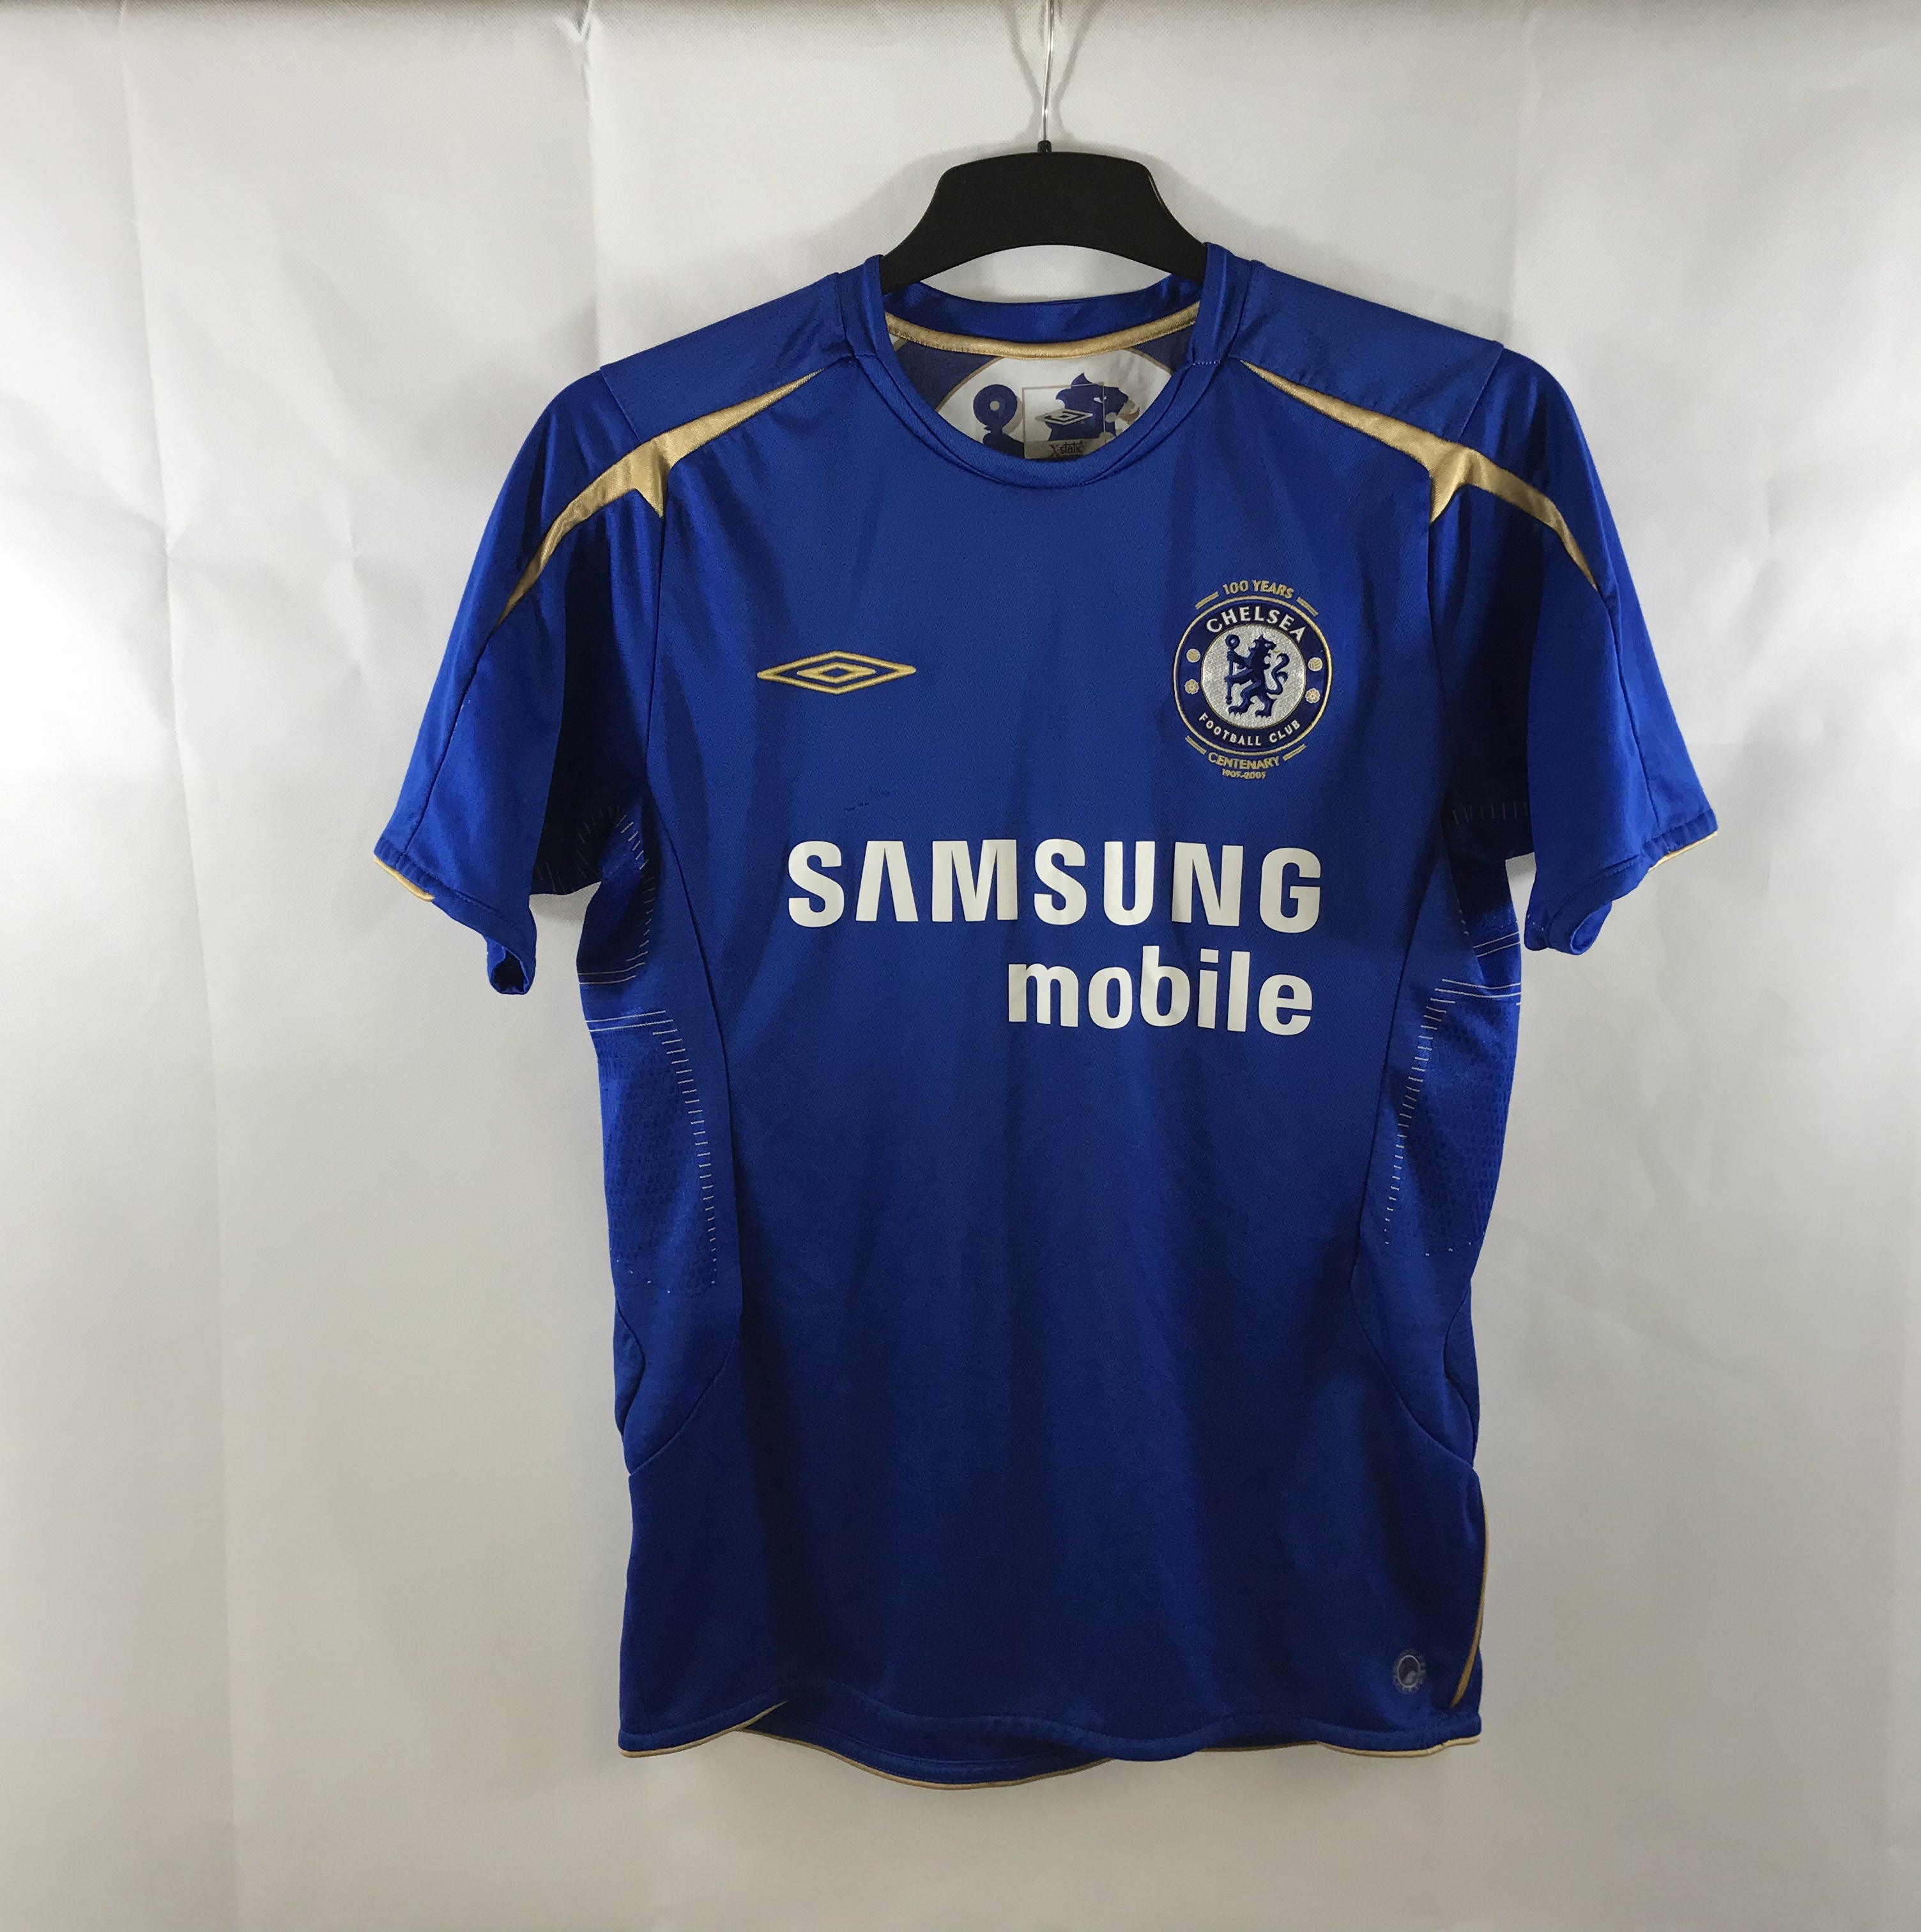 low priced 331bb 5e6cd Chelsea Centenary Home Football Shirt 2005/06 Adults Small Umbro